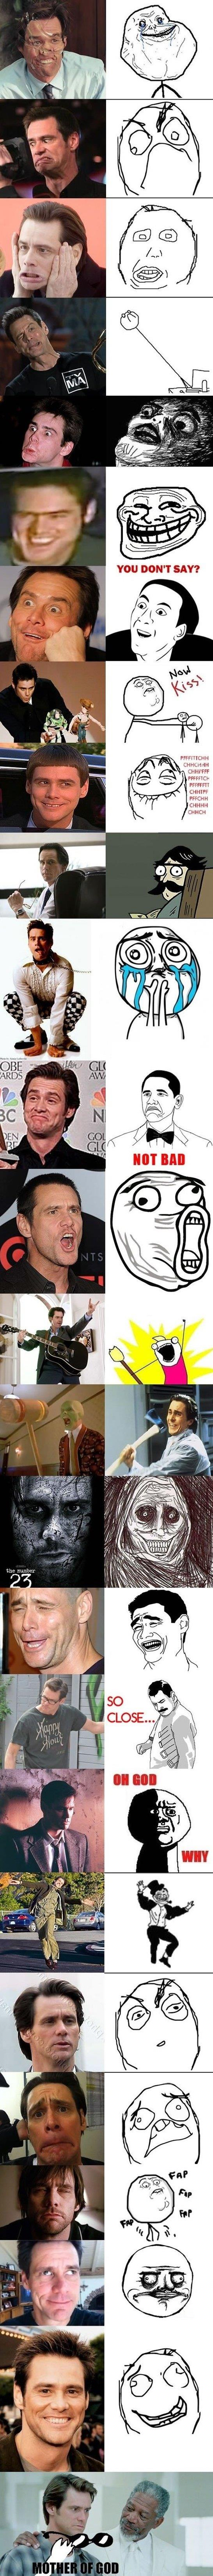 Jim Carrey and Rage Faces